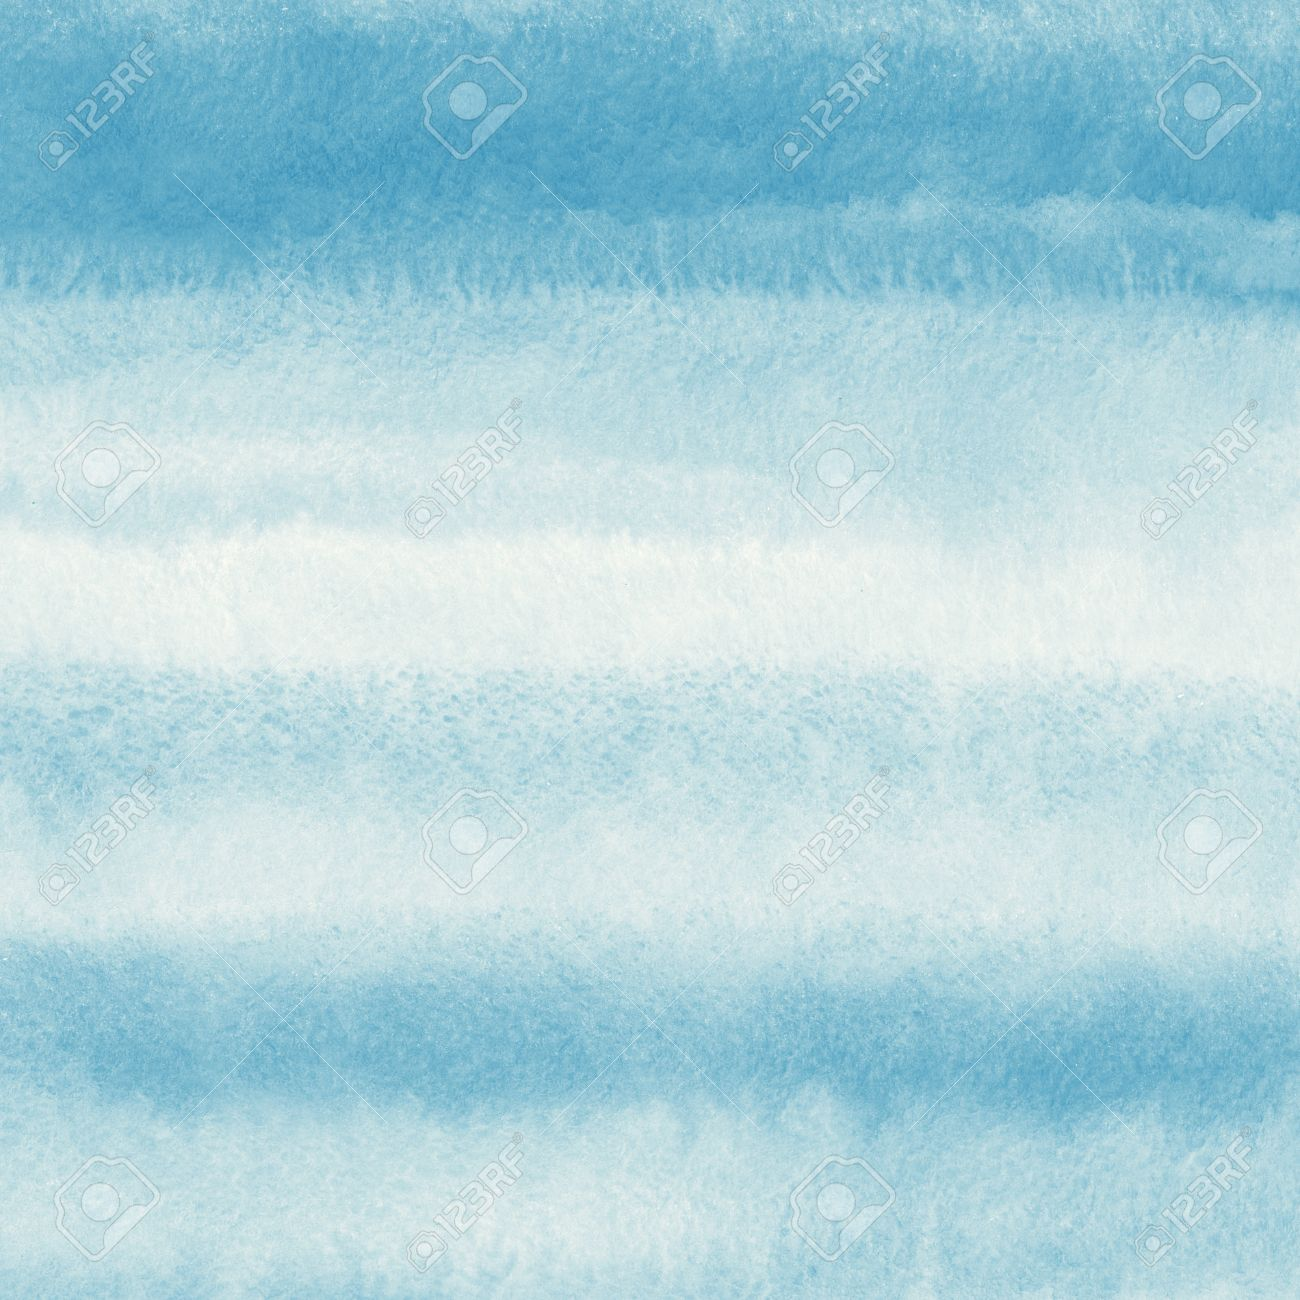 Abstract Watercolor Background Pastel Blue And White Striped Stock Photo Picture And Royalty Free Image Image 43420656